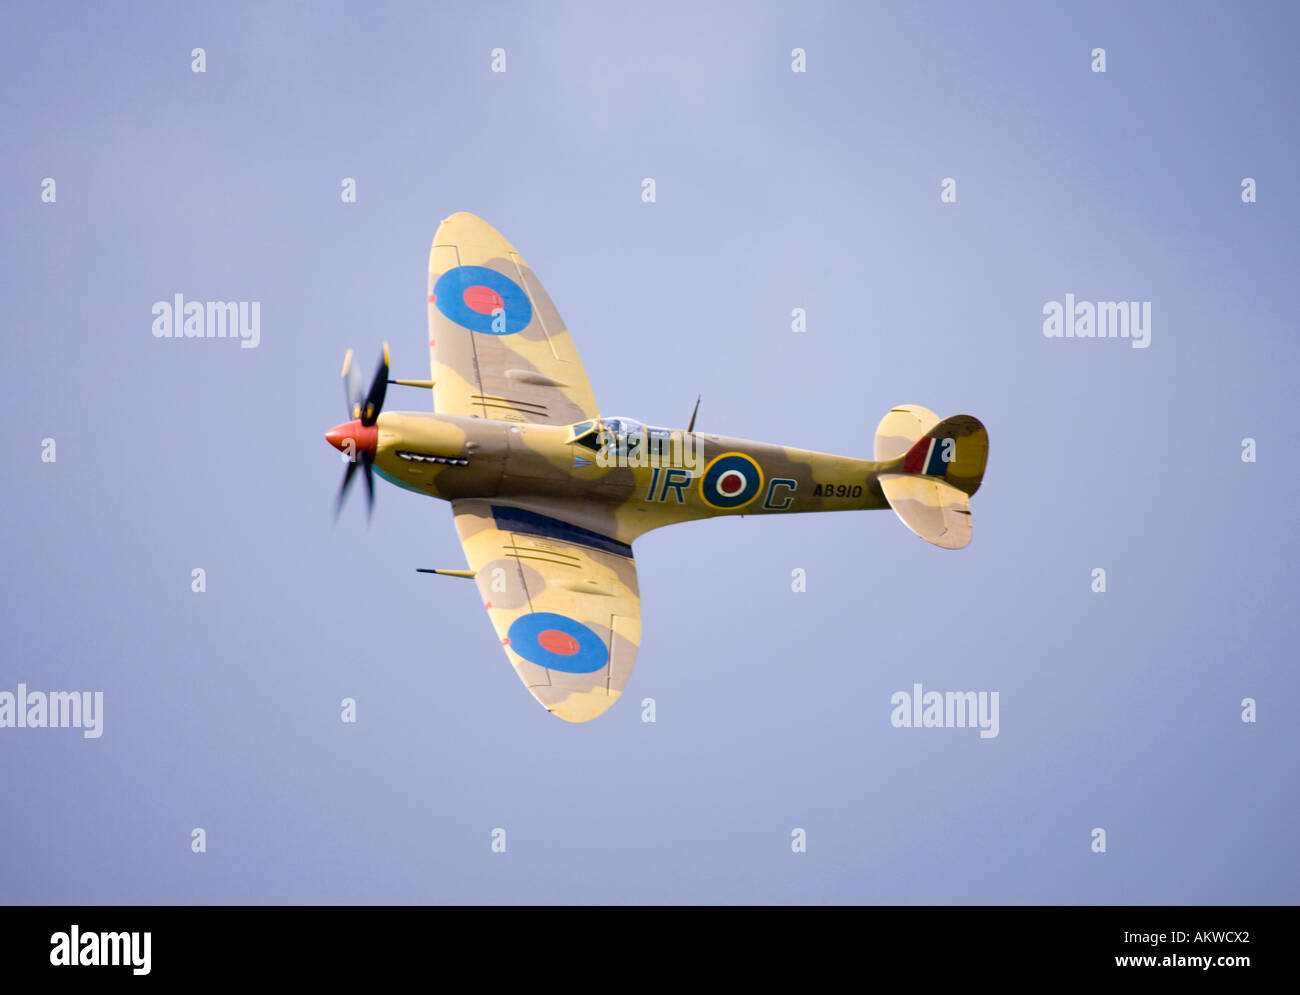 Spitfire fighter aircraft at Rougham airshow August 2006 in Suffolk, UK - Stock Image